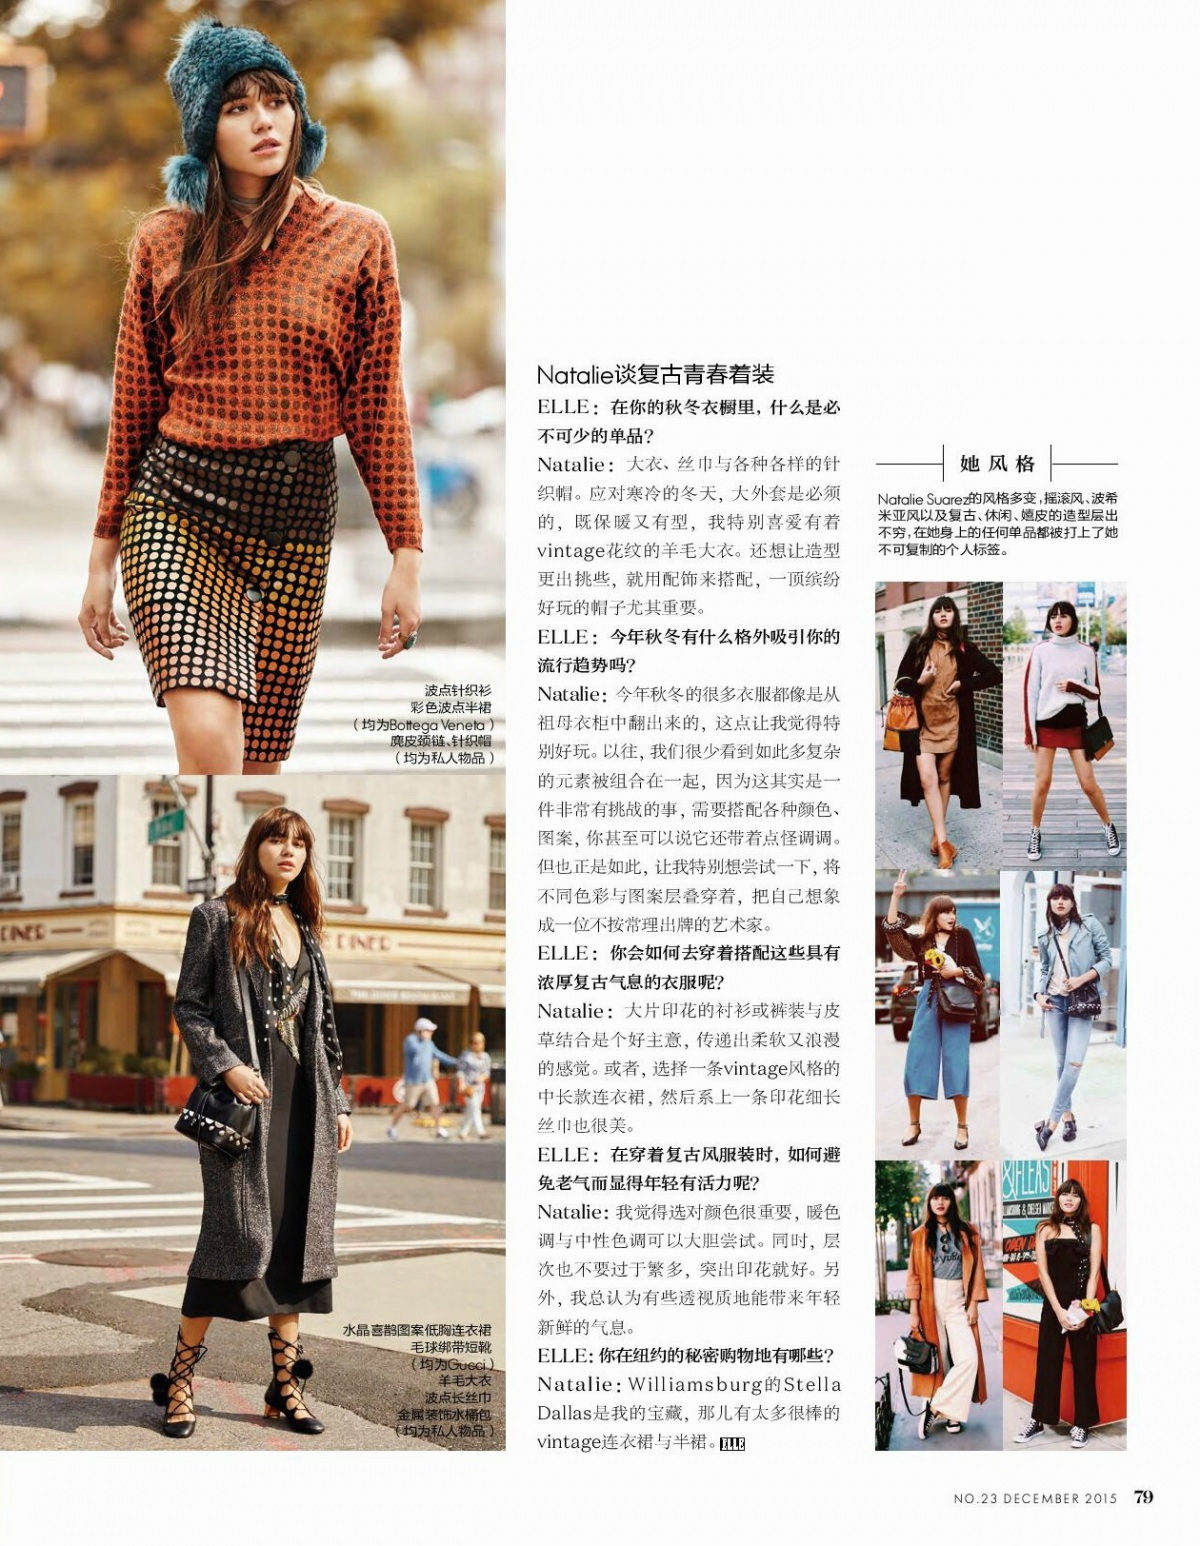 elle-china-december-natalie-suarez-natalie-off-duty-6